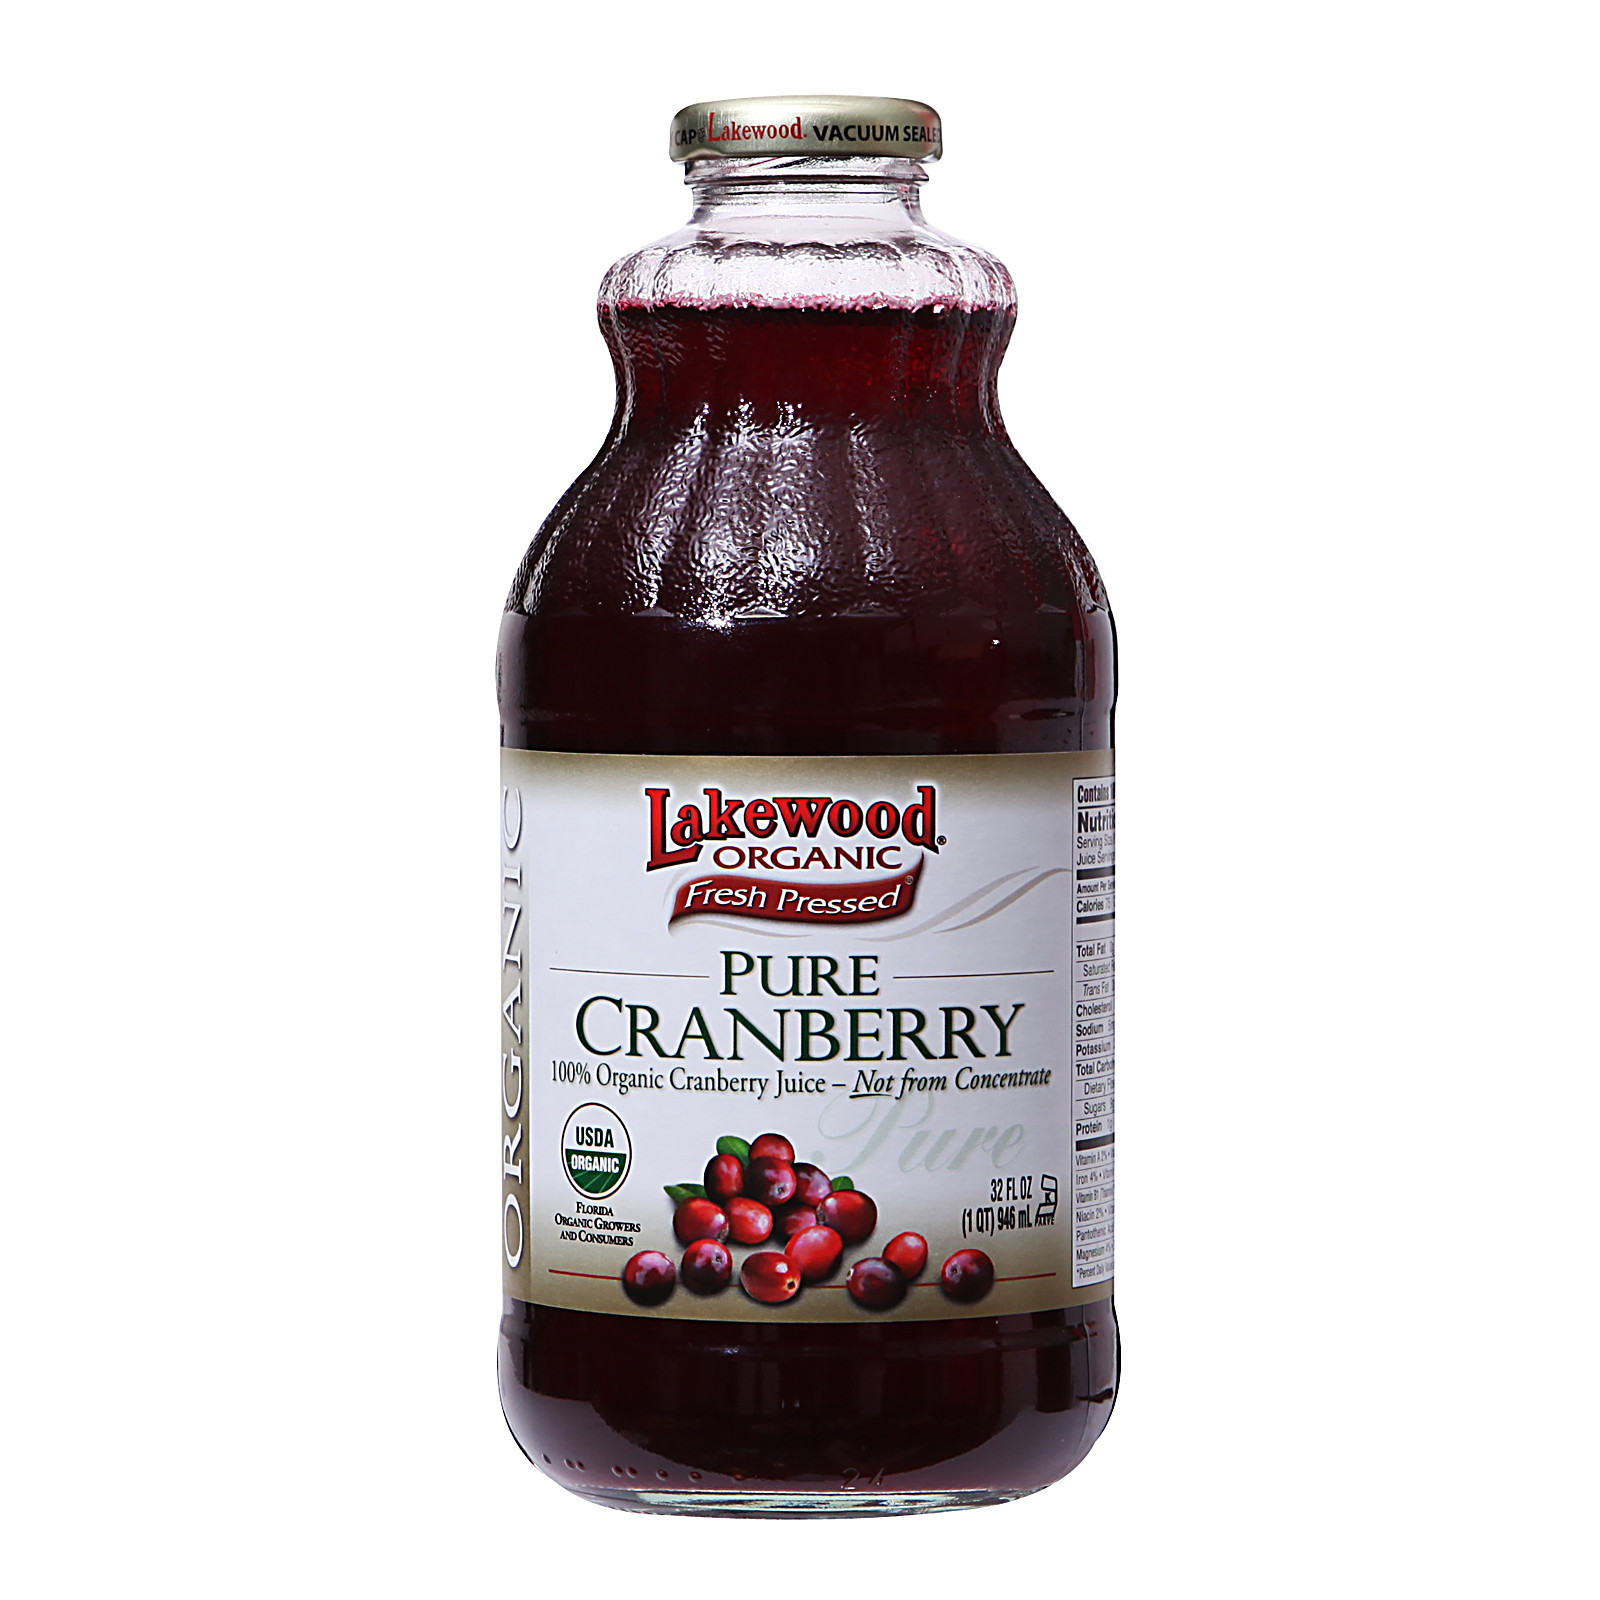 Organic Cranberry Juice  Lakewood Organic Pure Cranberry 0 from RedMart